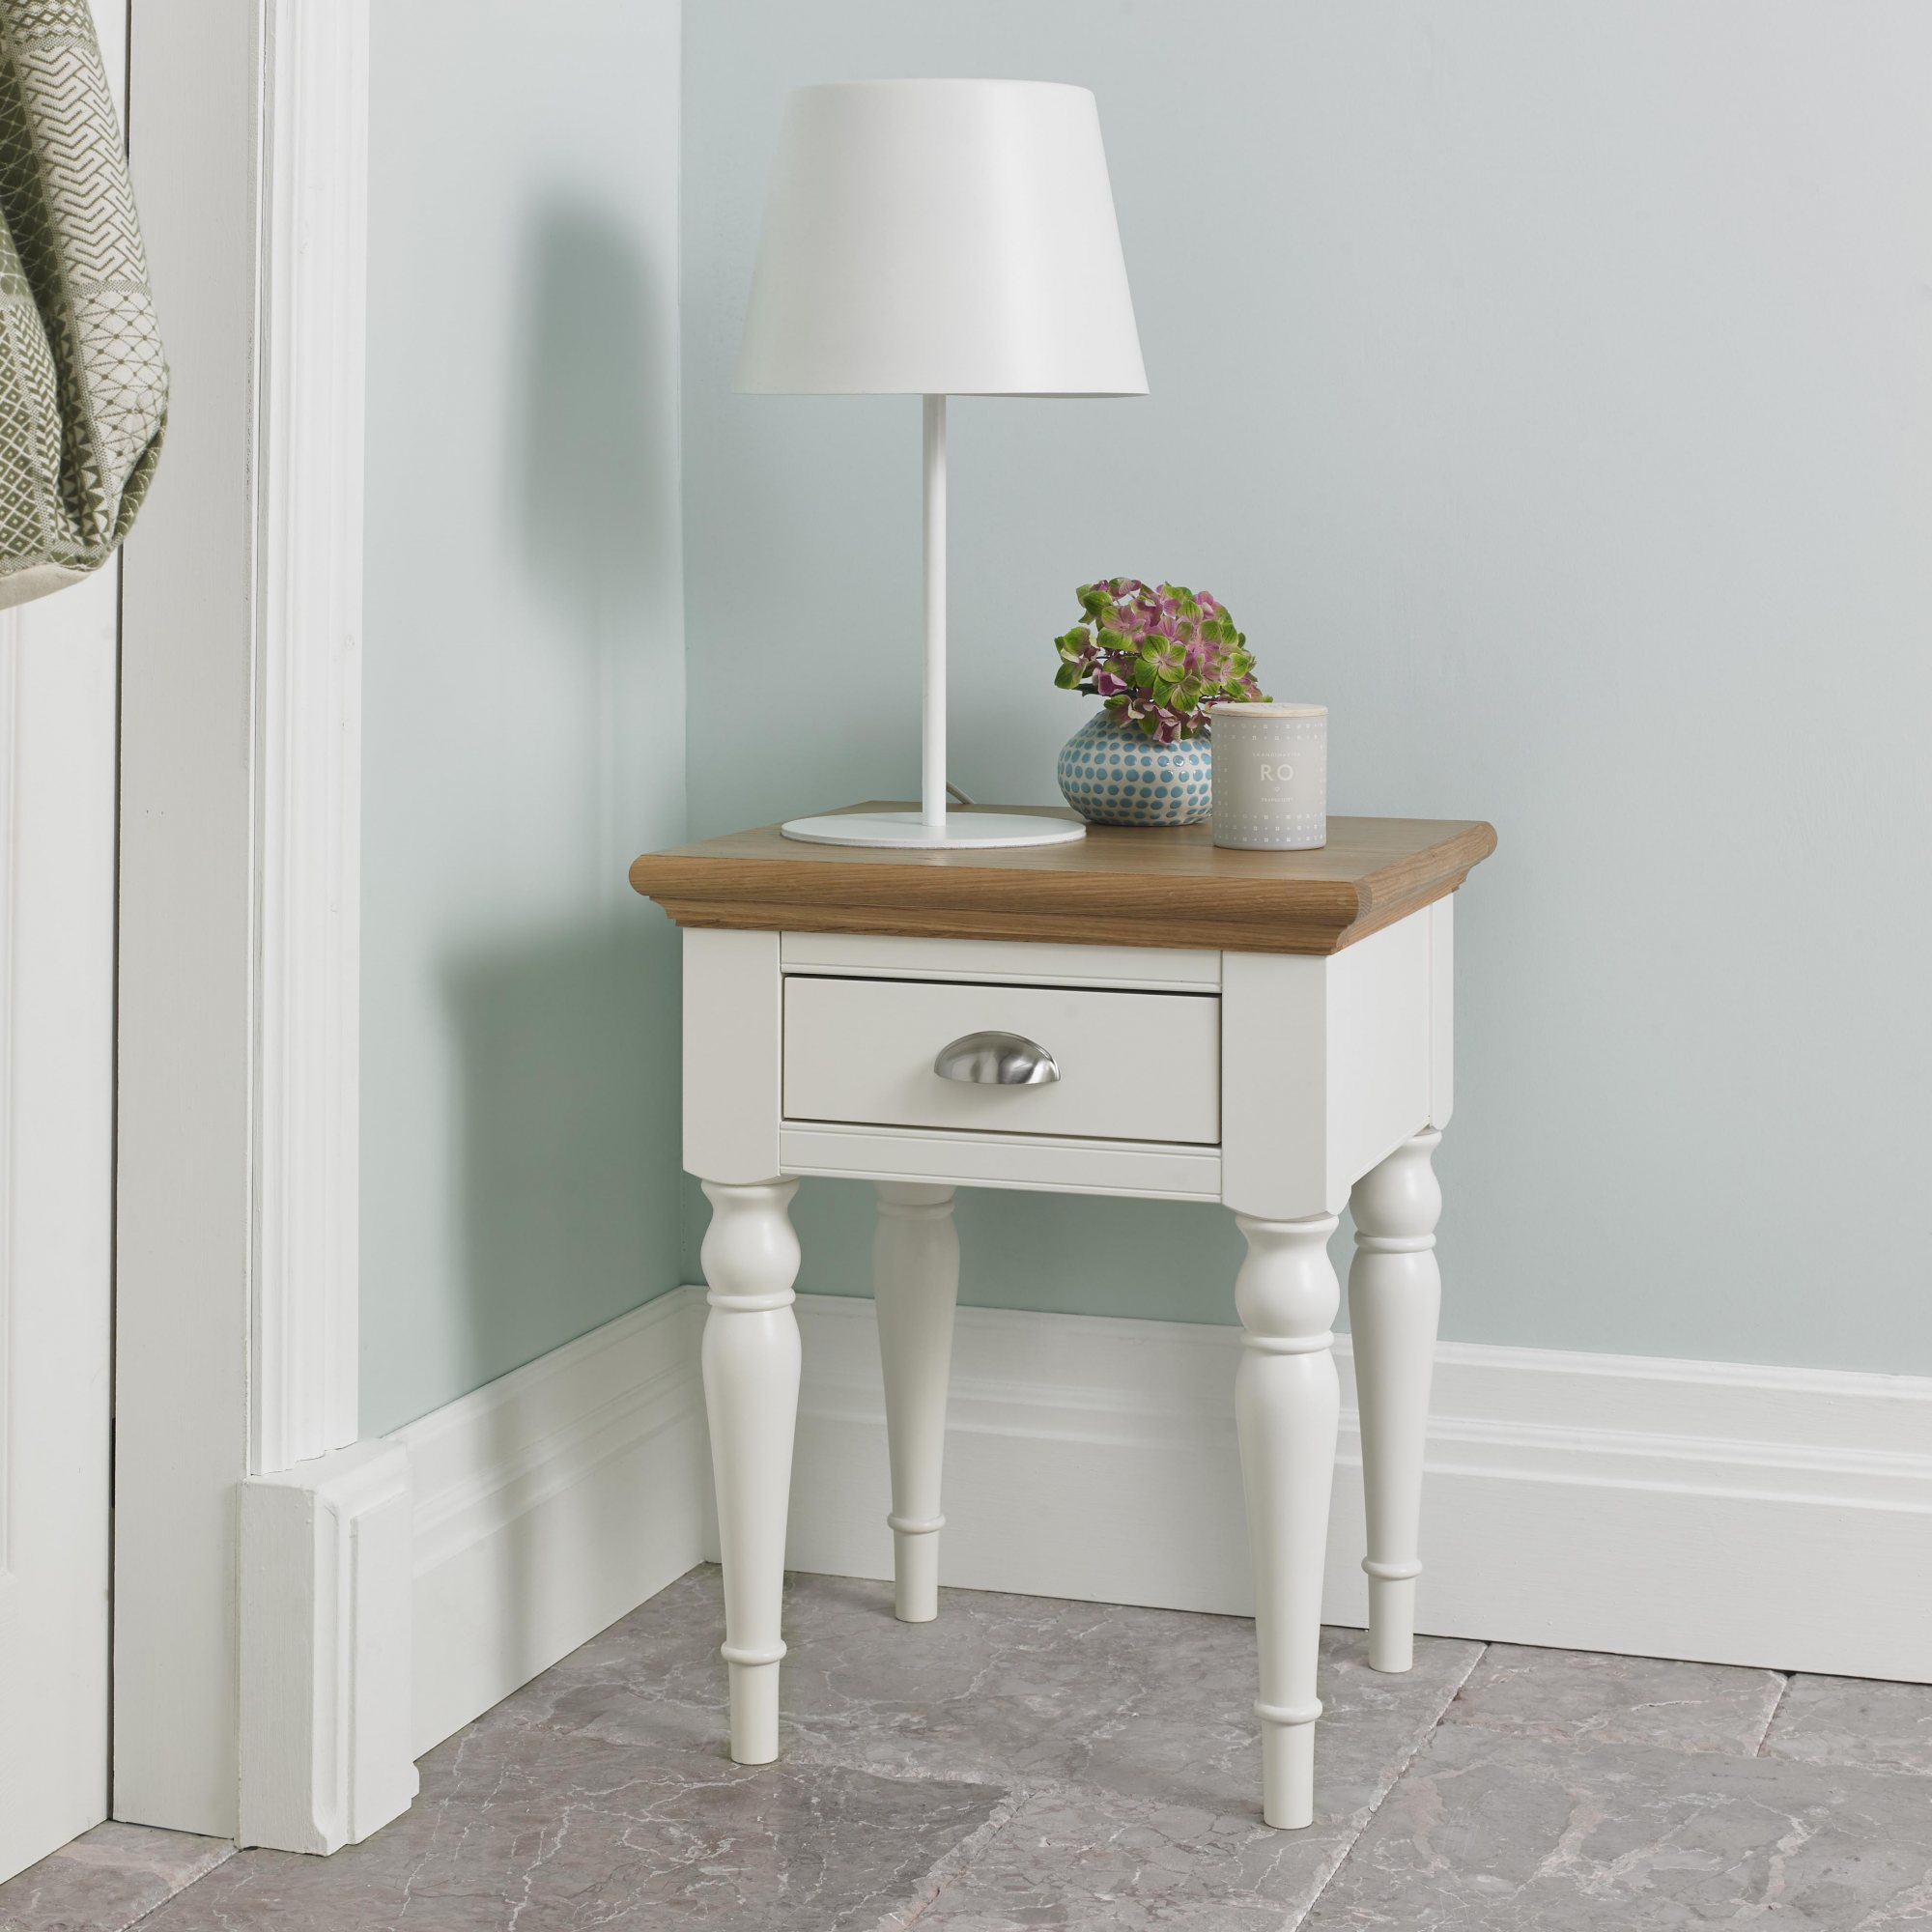 KYRA TWO TONE LAMP TABLE - L46cm x D43cm x H57cm